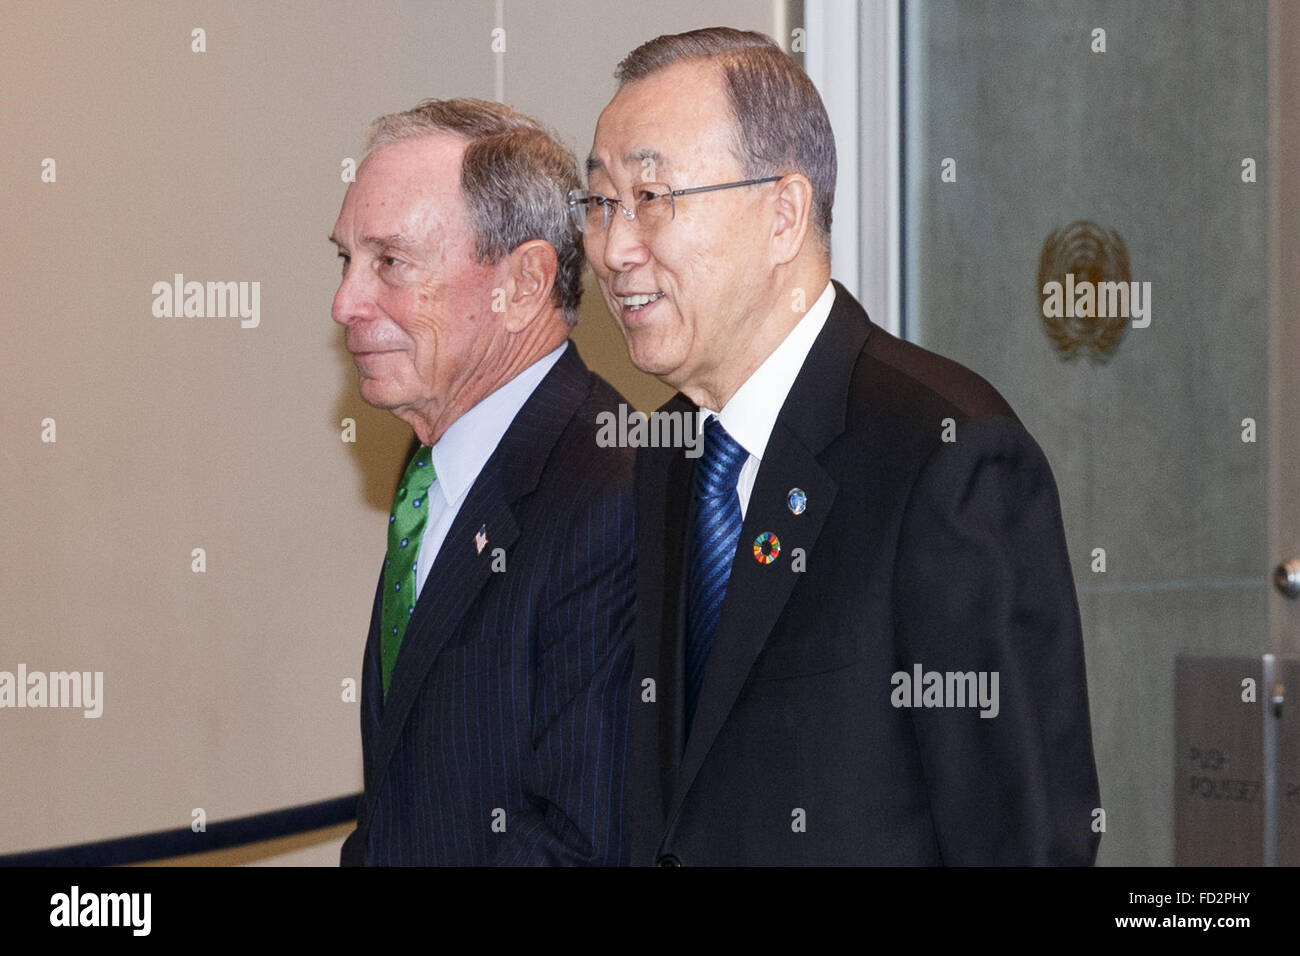 United Nations, United Nations Secretary-General Ban Ki-moon at the United Nations headquarters in New York. 27th - Stock Image